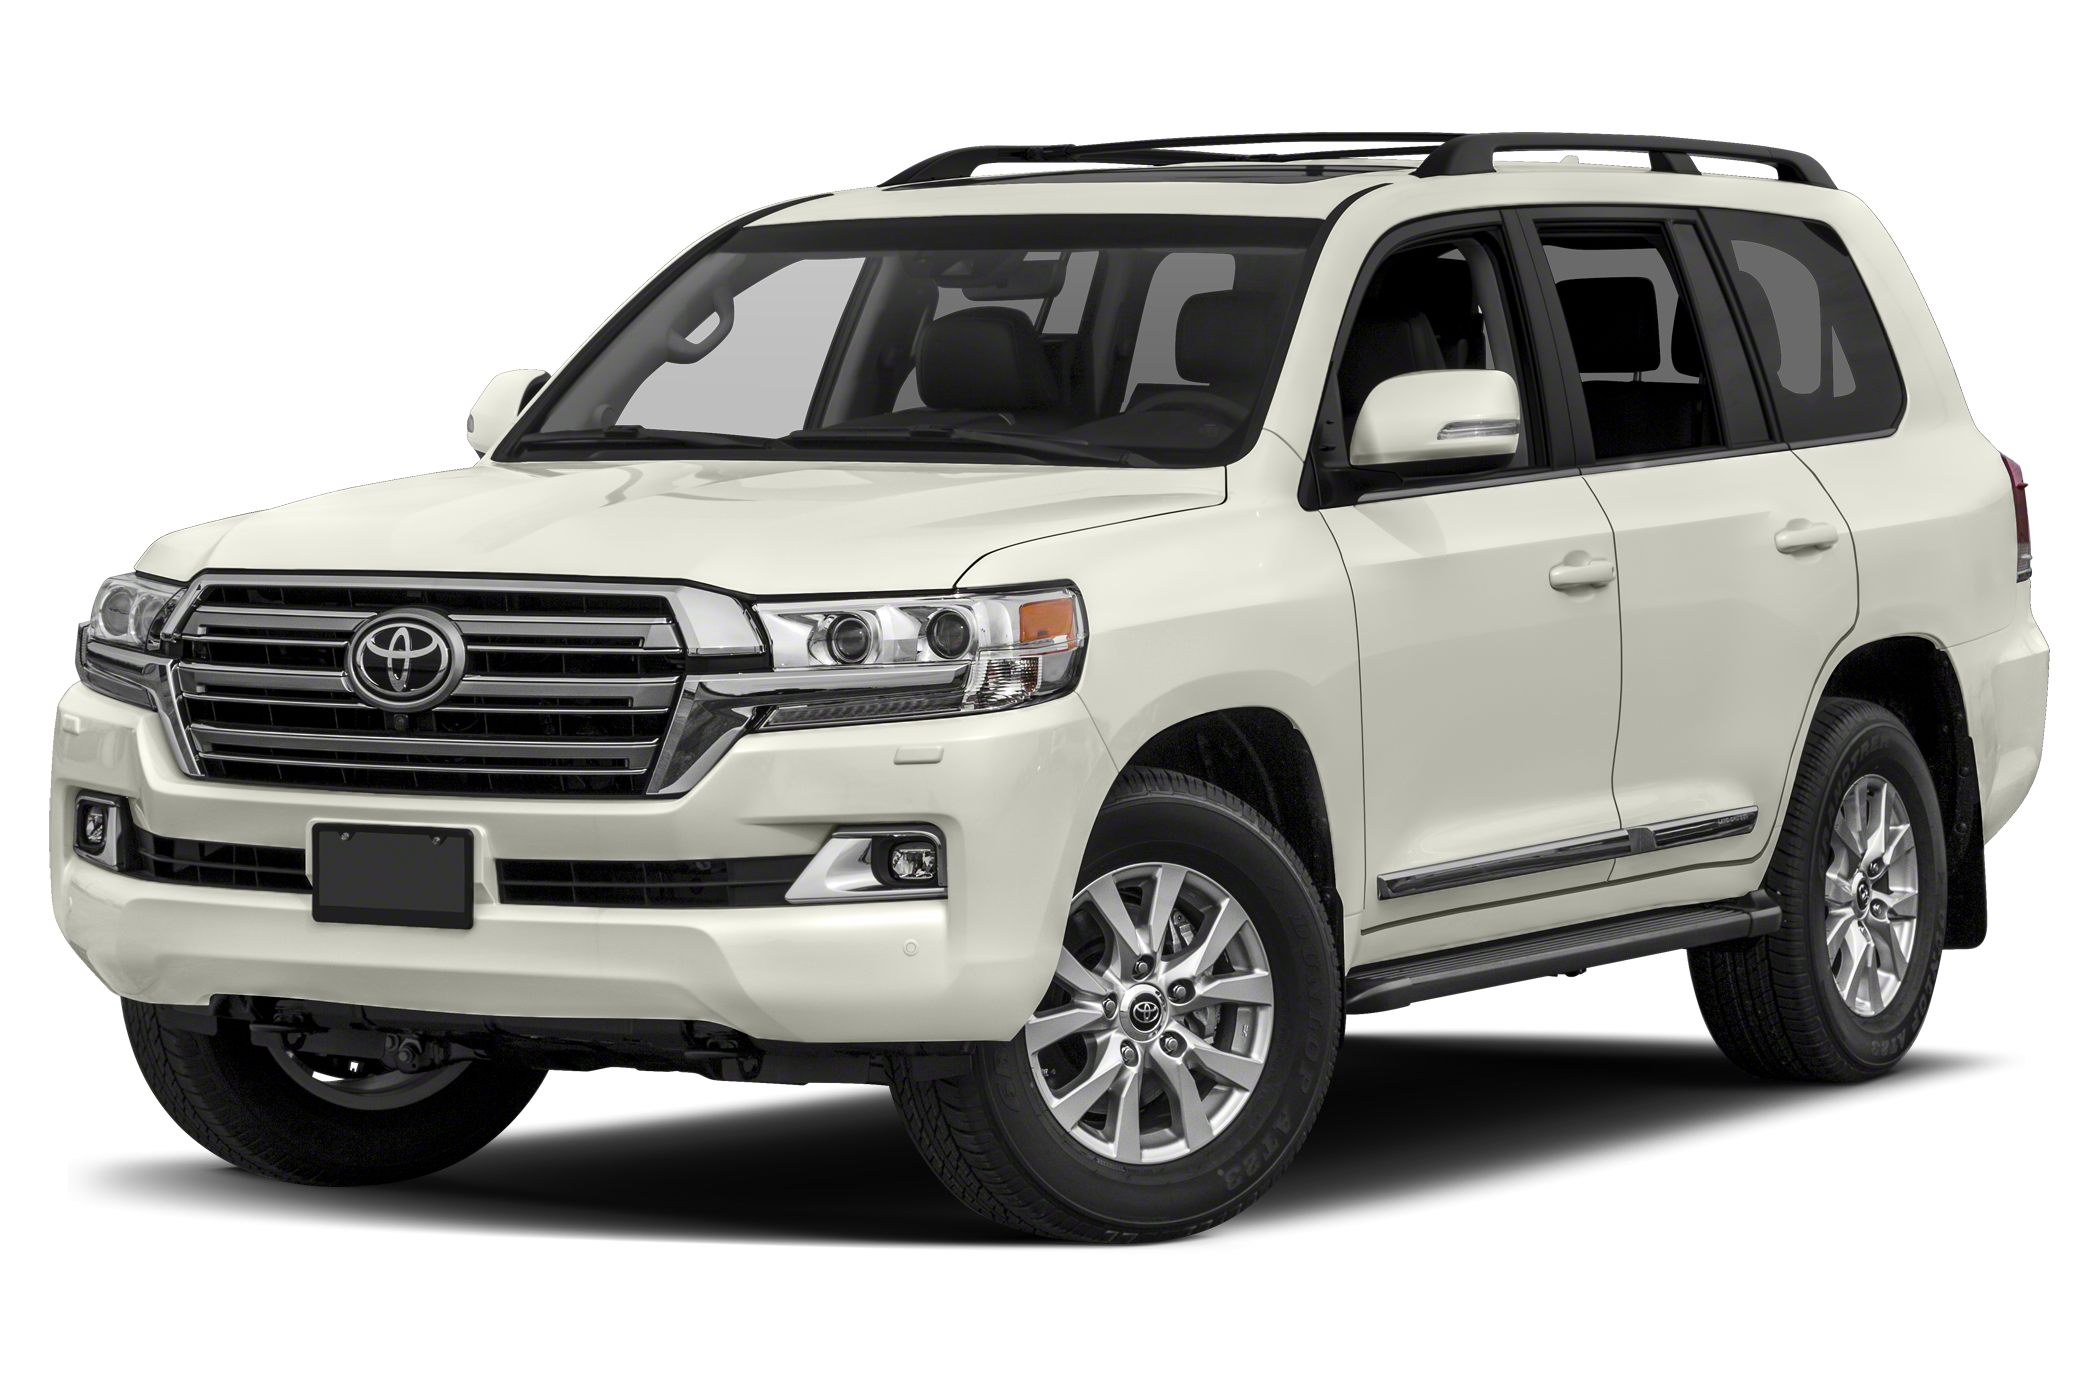 2016 toyota land cruiser quick spin w video autoblog. Black Bedroom Furniture Sets. Home Design Ideas